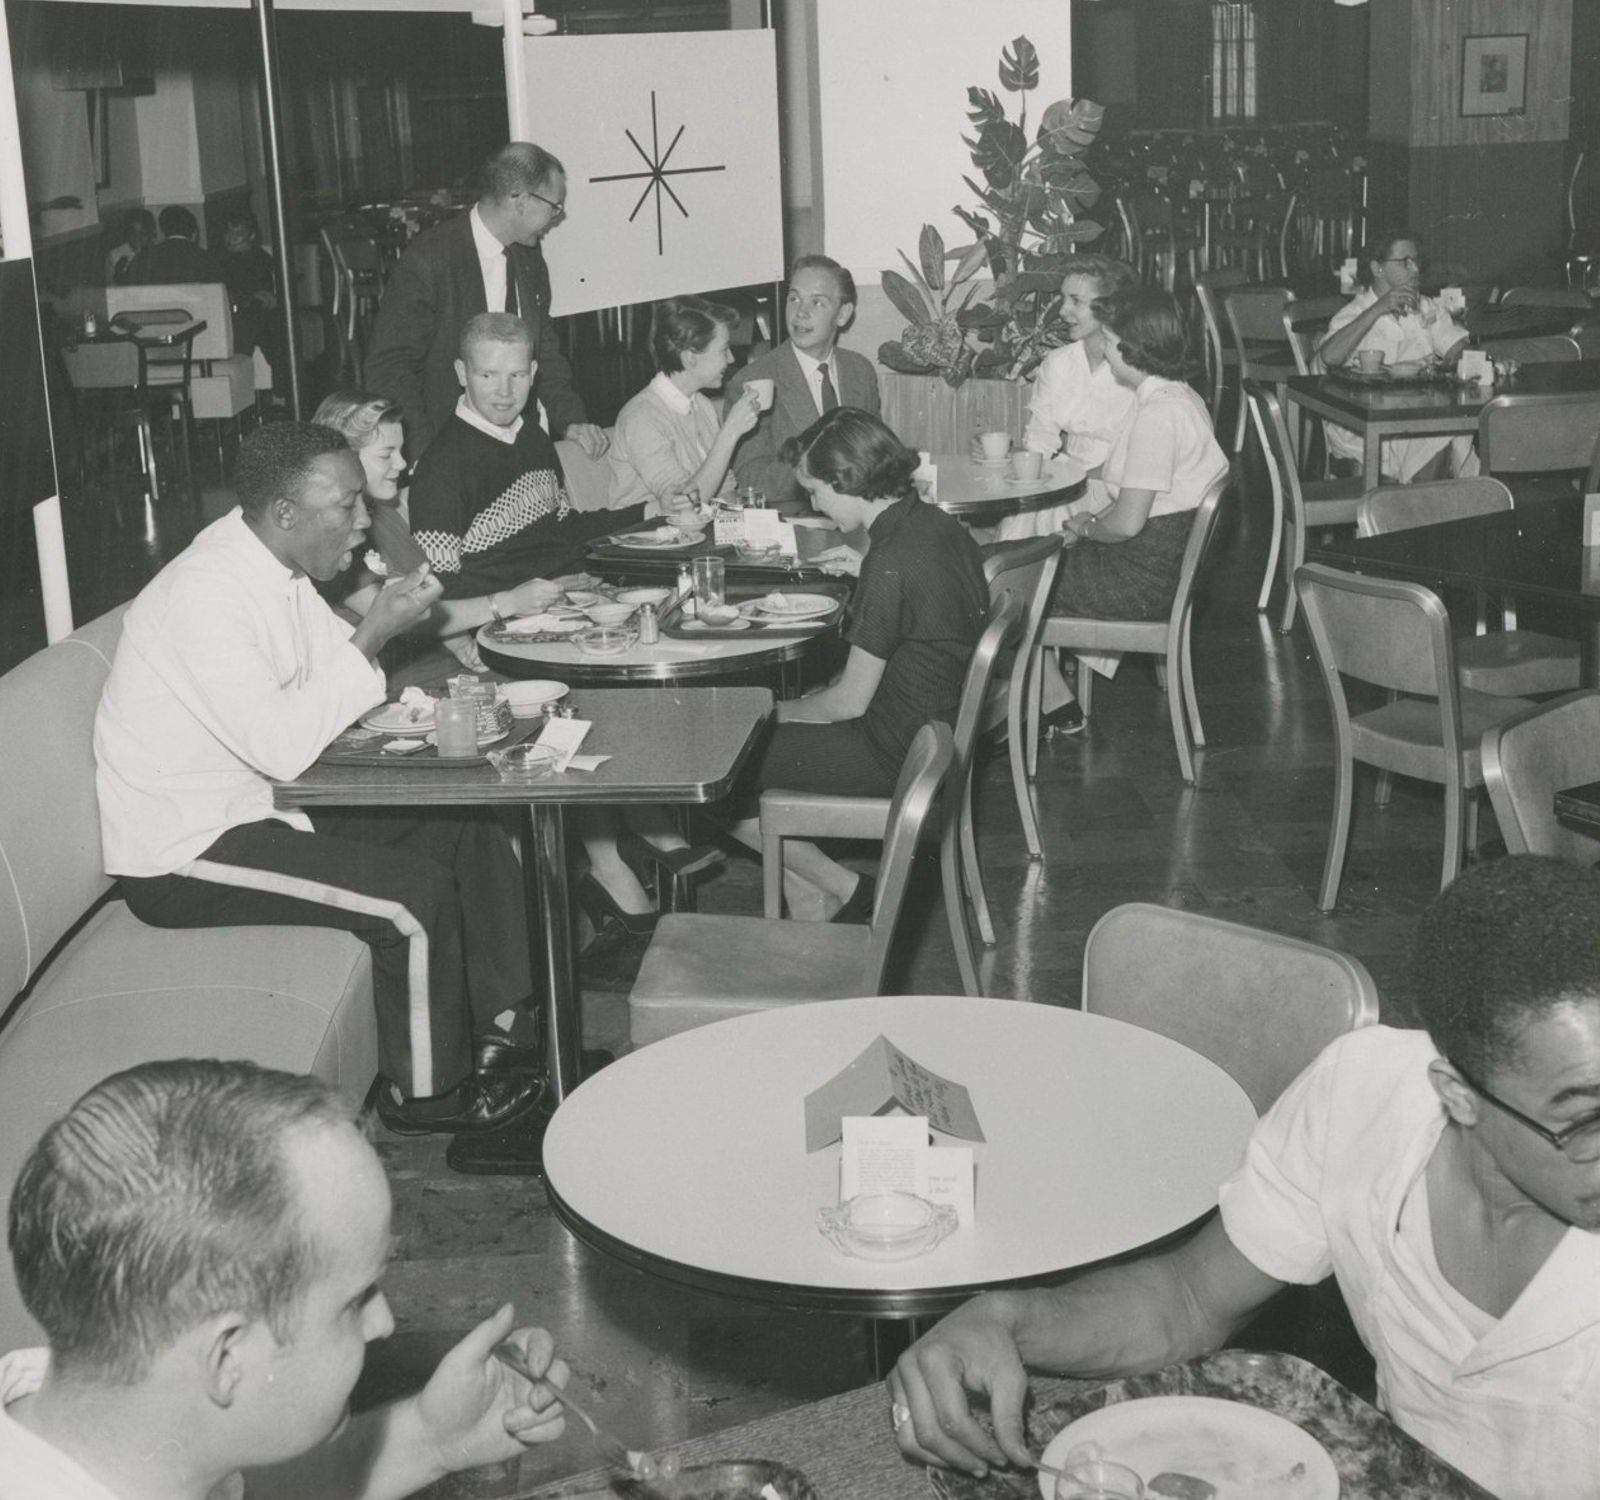 Diners in the Kansas Union cafeteria, 1957